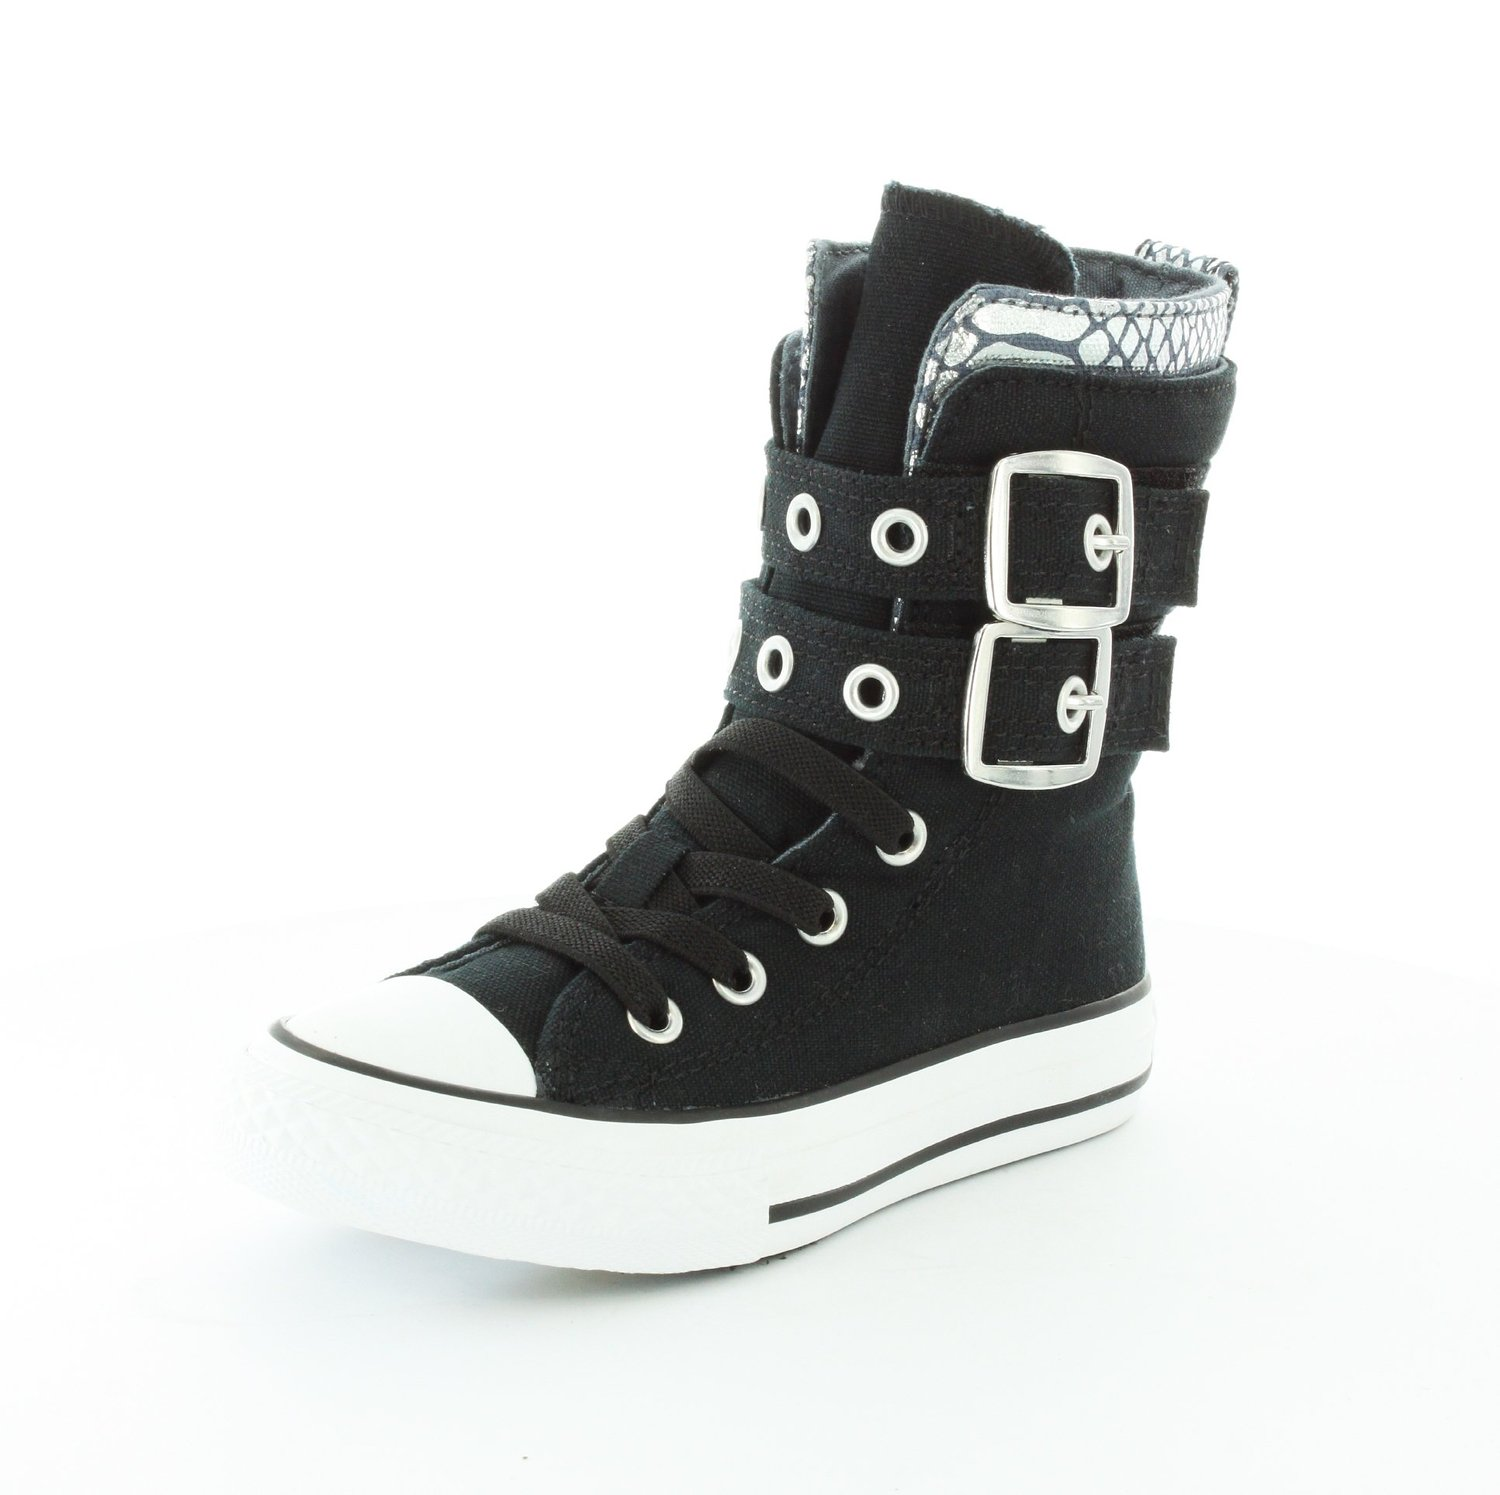 5ce1a8317a91e Amazon.com: Converse Girls Chuck Taylor All Star Glendale Hi-Top Sneaker:  Shoes